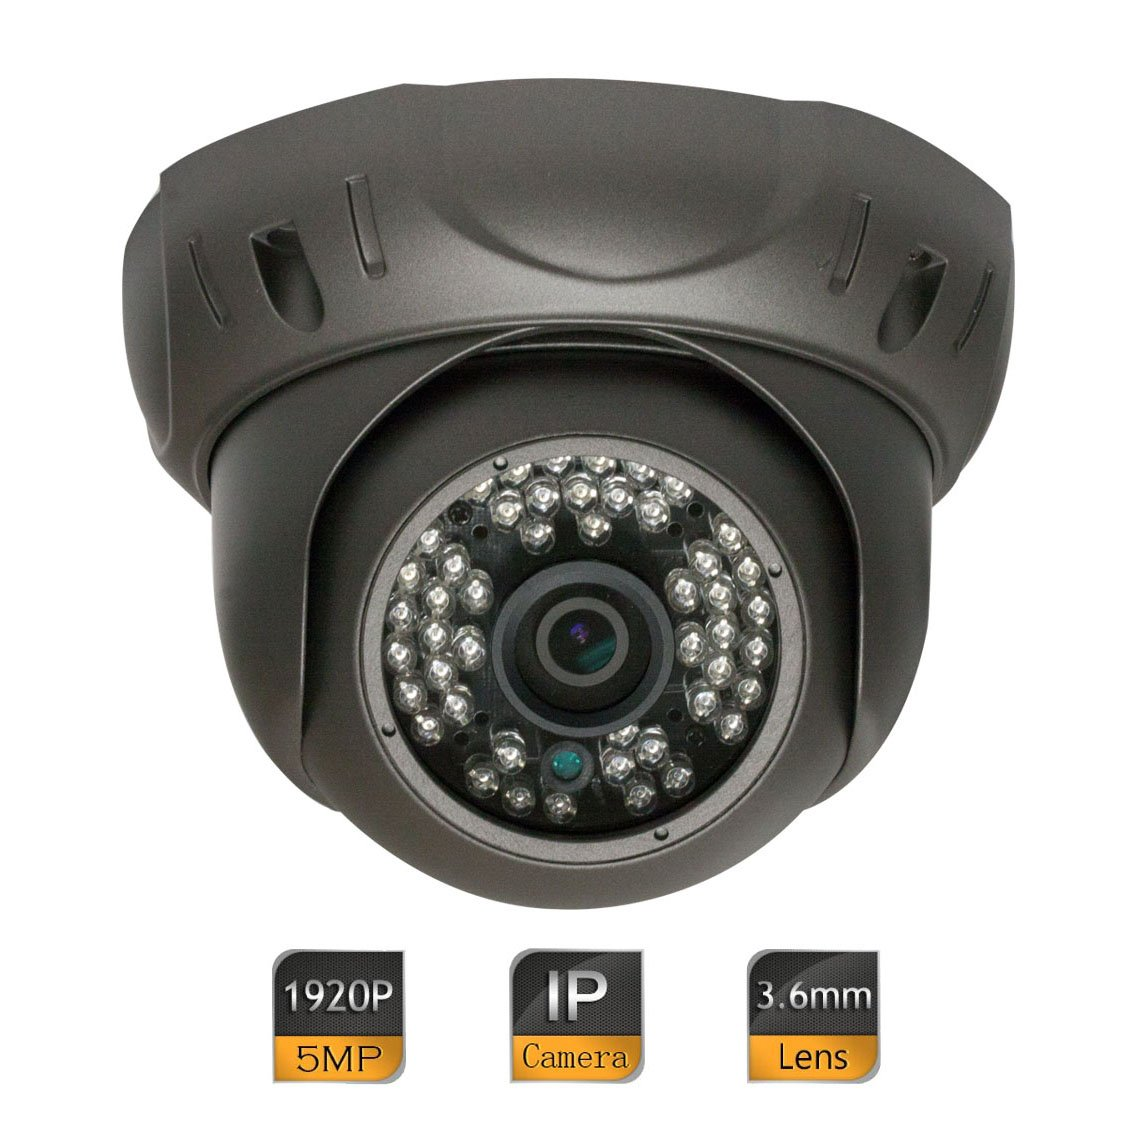 GW Security 5 Megapixel (2592 x 1920) Super HD 1920P High Resolution Network PoE Power Over Ethernet Security Dome IP Camera with 3.6mm Wide Angle Len (Grey) GW5092 IPC